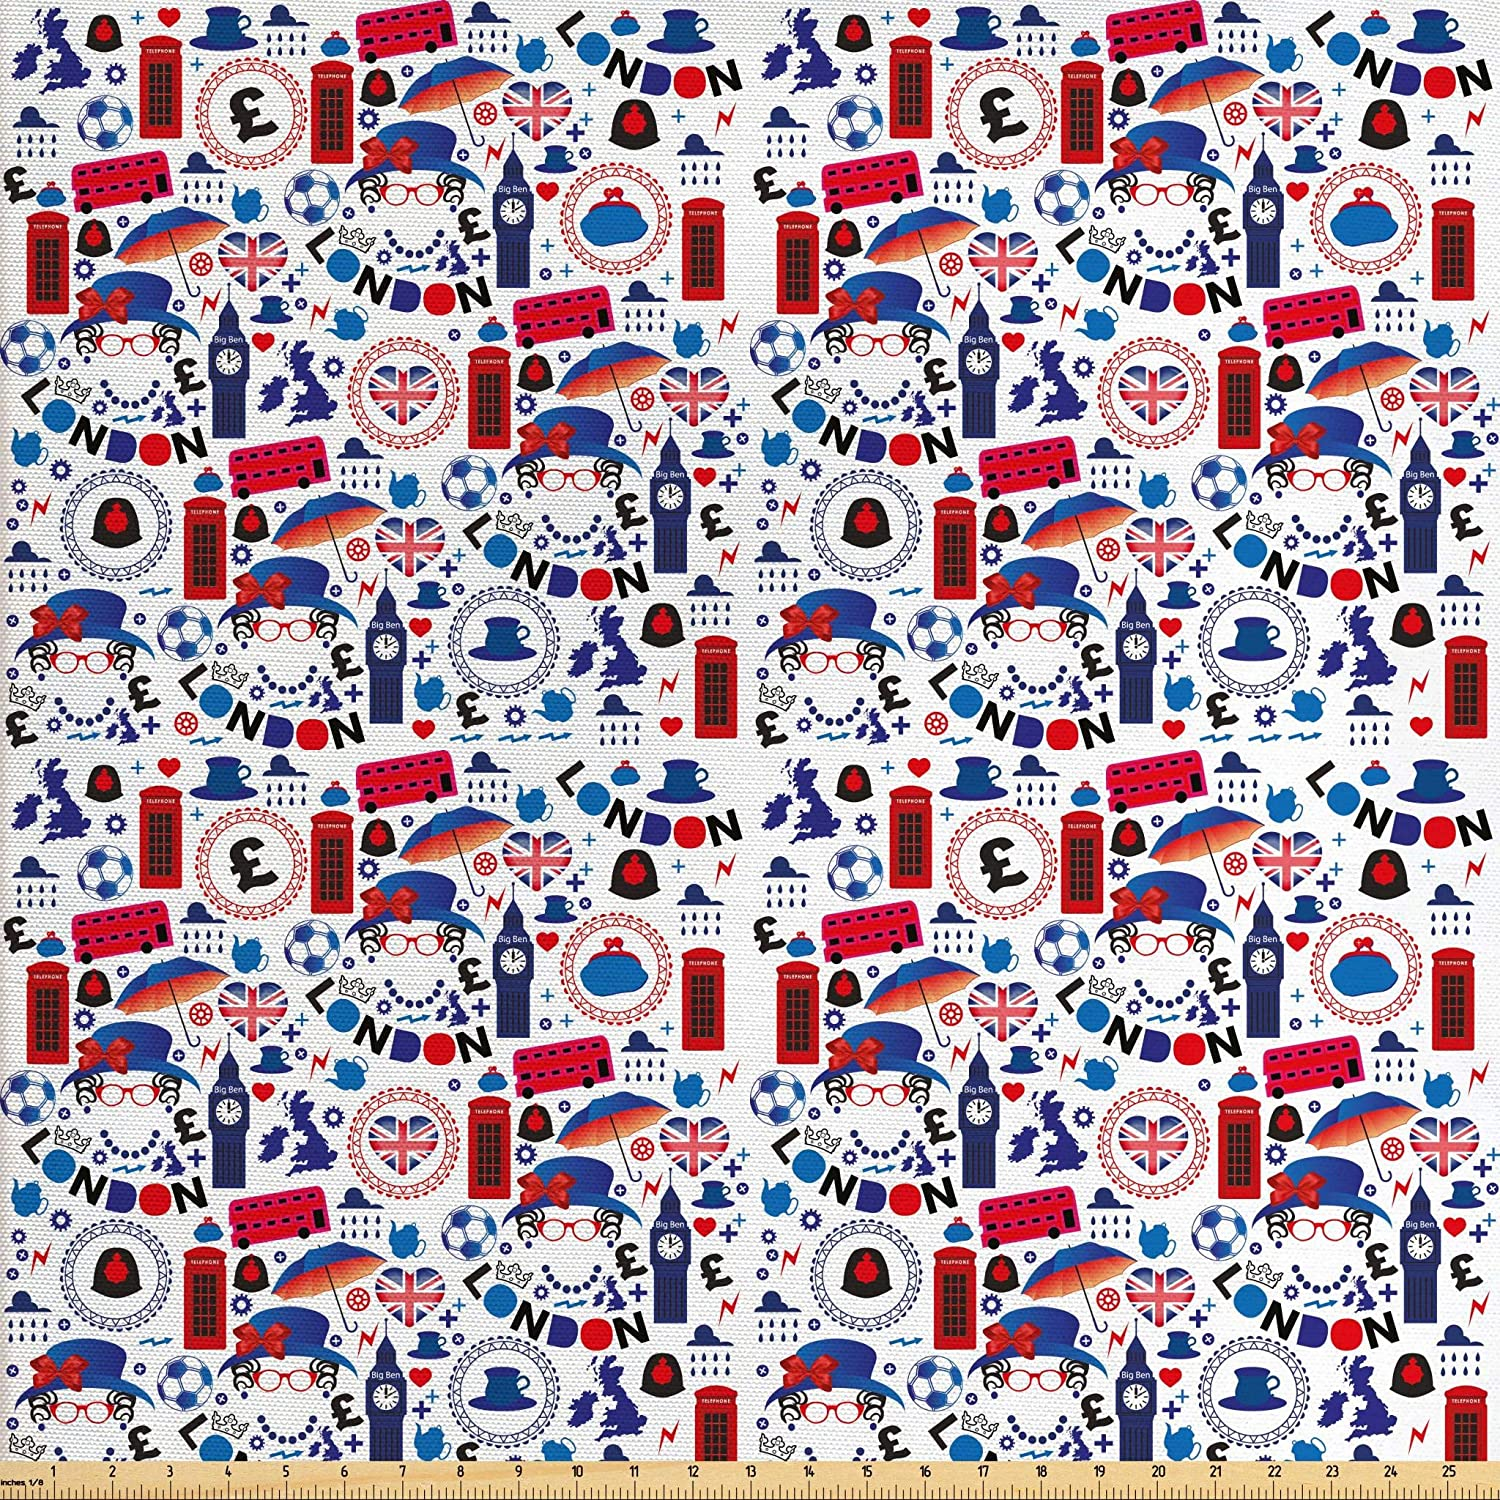 Ambesonne London Fabric by The Yard, Pattern with London Queen Elizabeth Umbrella Tea Party Map Travel Theme, Decorative Fabric for Upholstery and Home Accents, 3 Yards, Ruby Blue